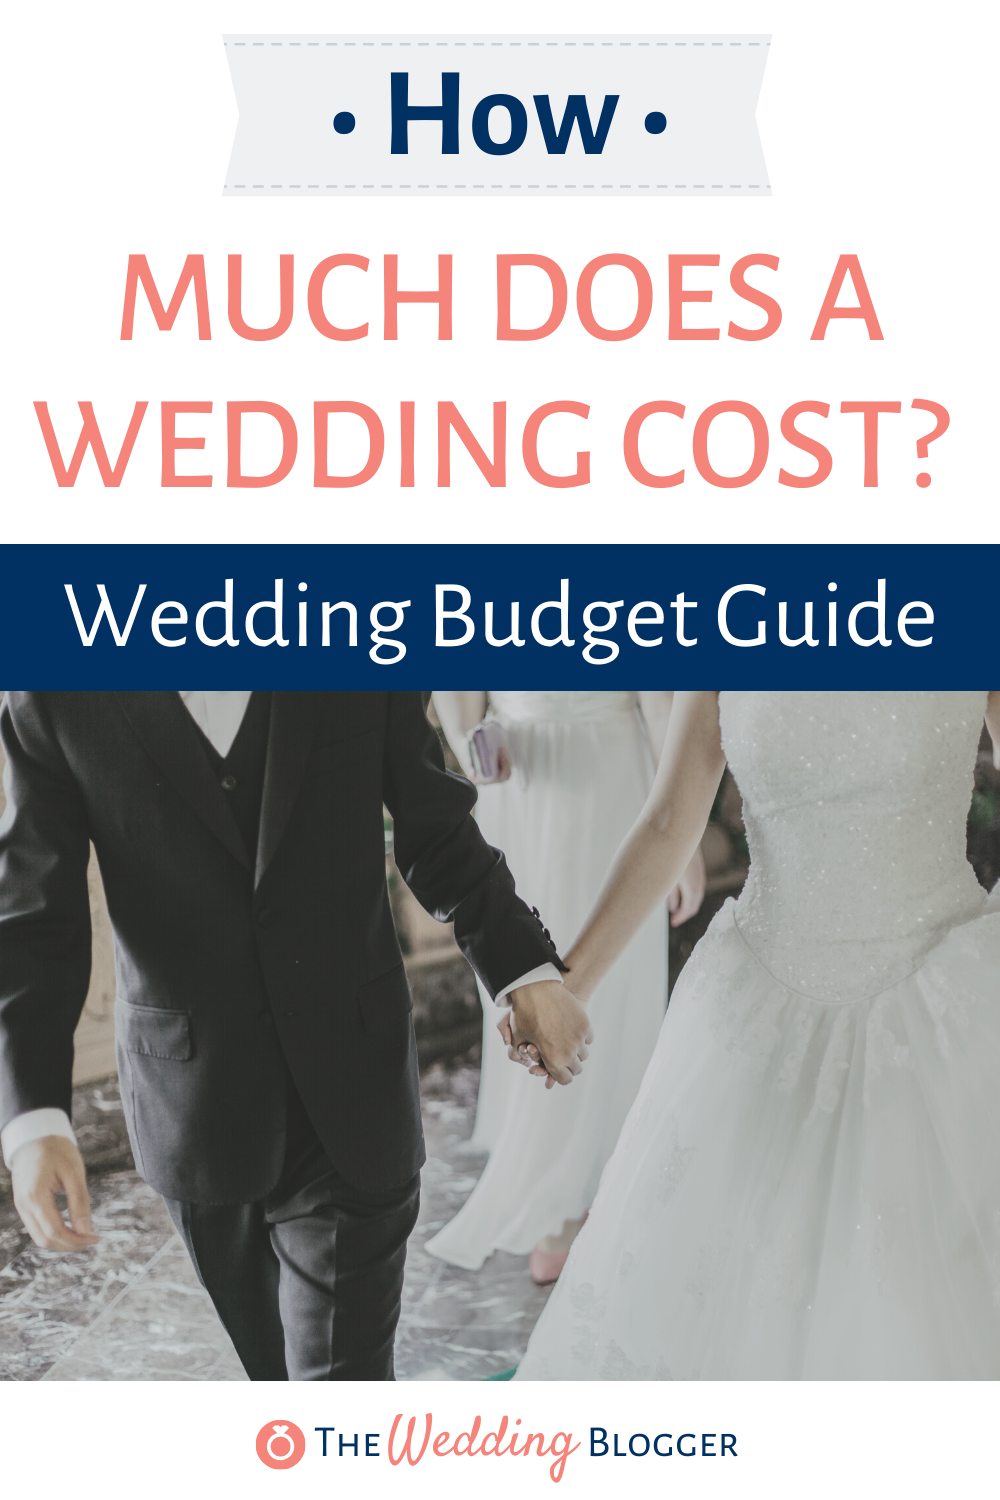 How Much Does a Wedding Cost in 2019? | Guide to Wedding Budgeting